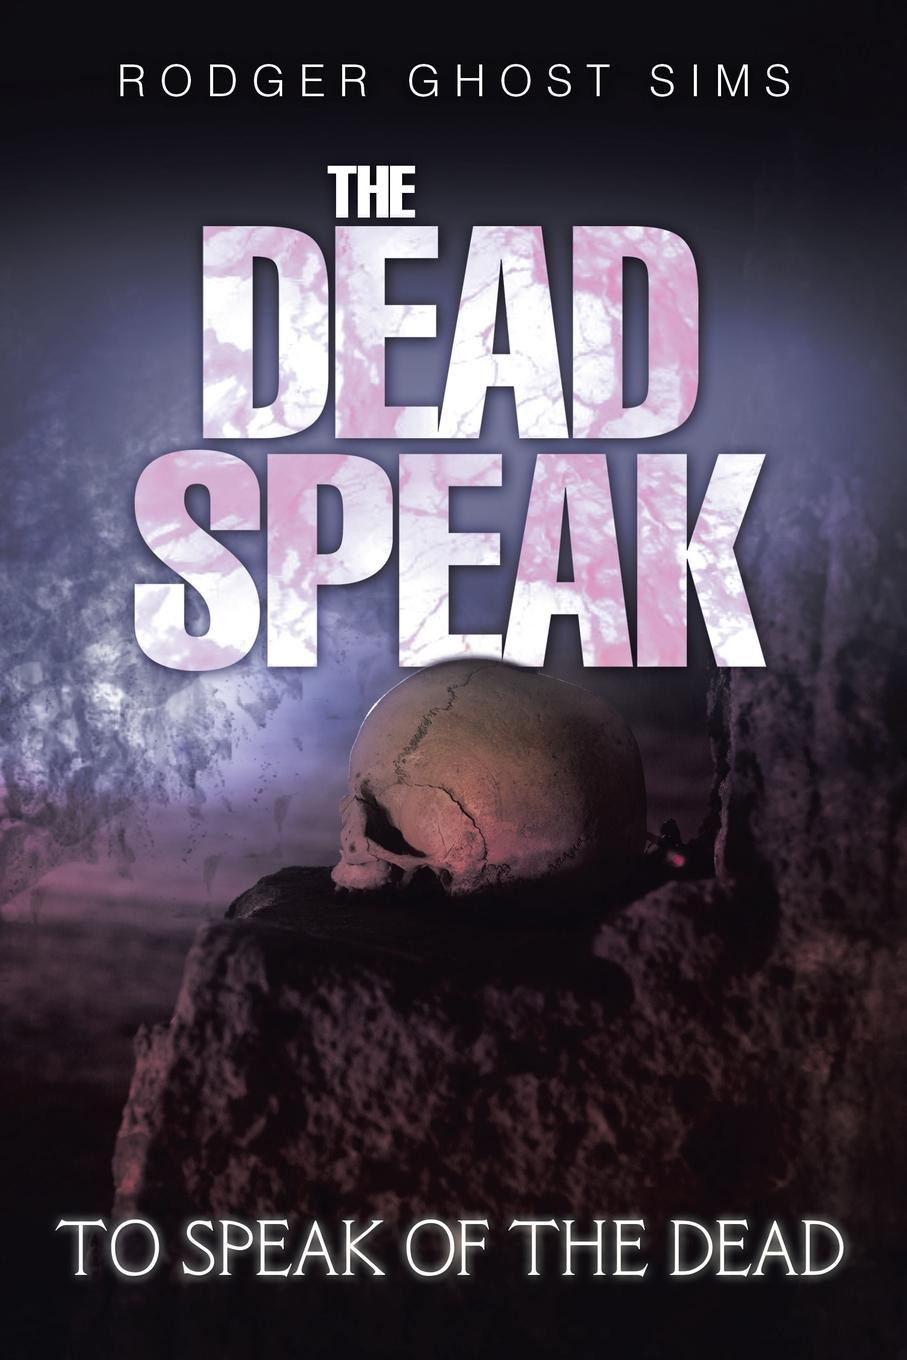 Rodger Ghost Sims The Dead Speak. To Speak of the